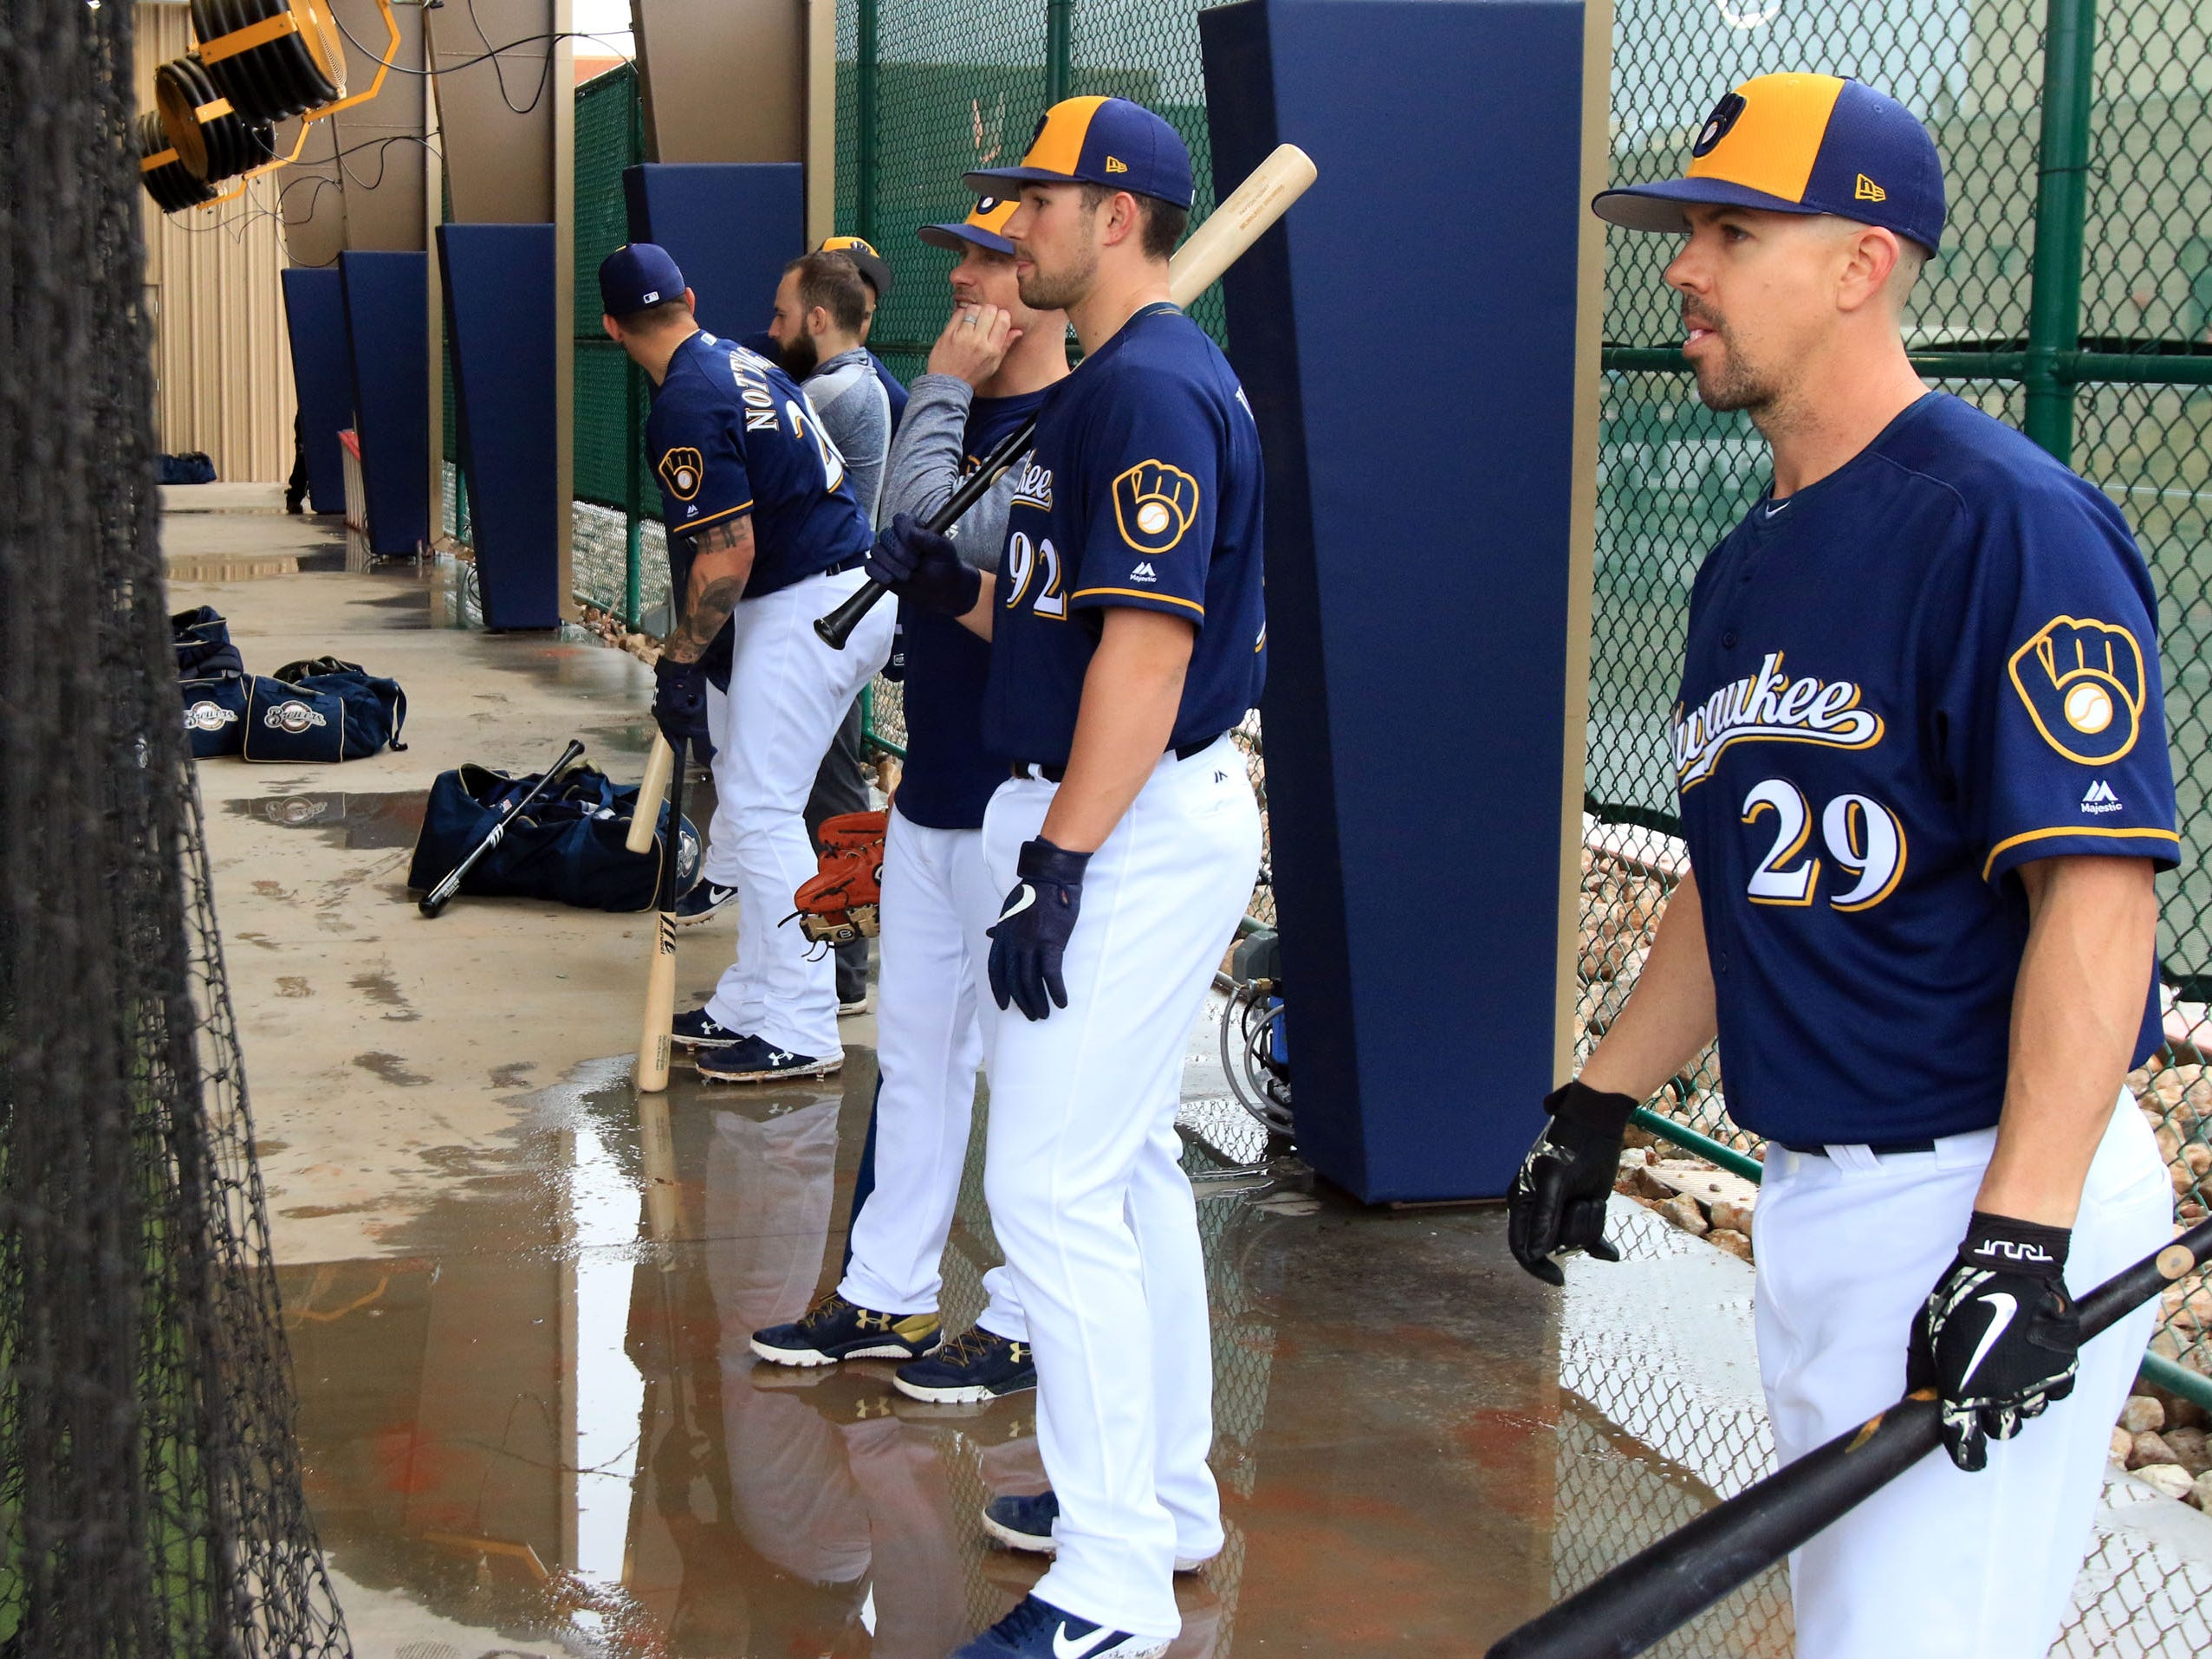 Players wait to get in their swings in the batting cages on a rainy Thursday in Phoenix.